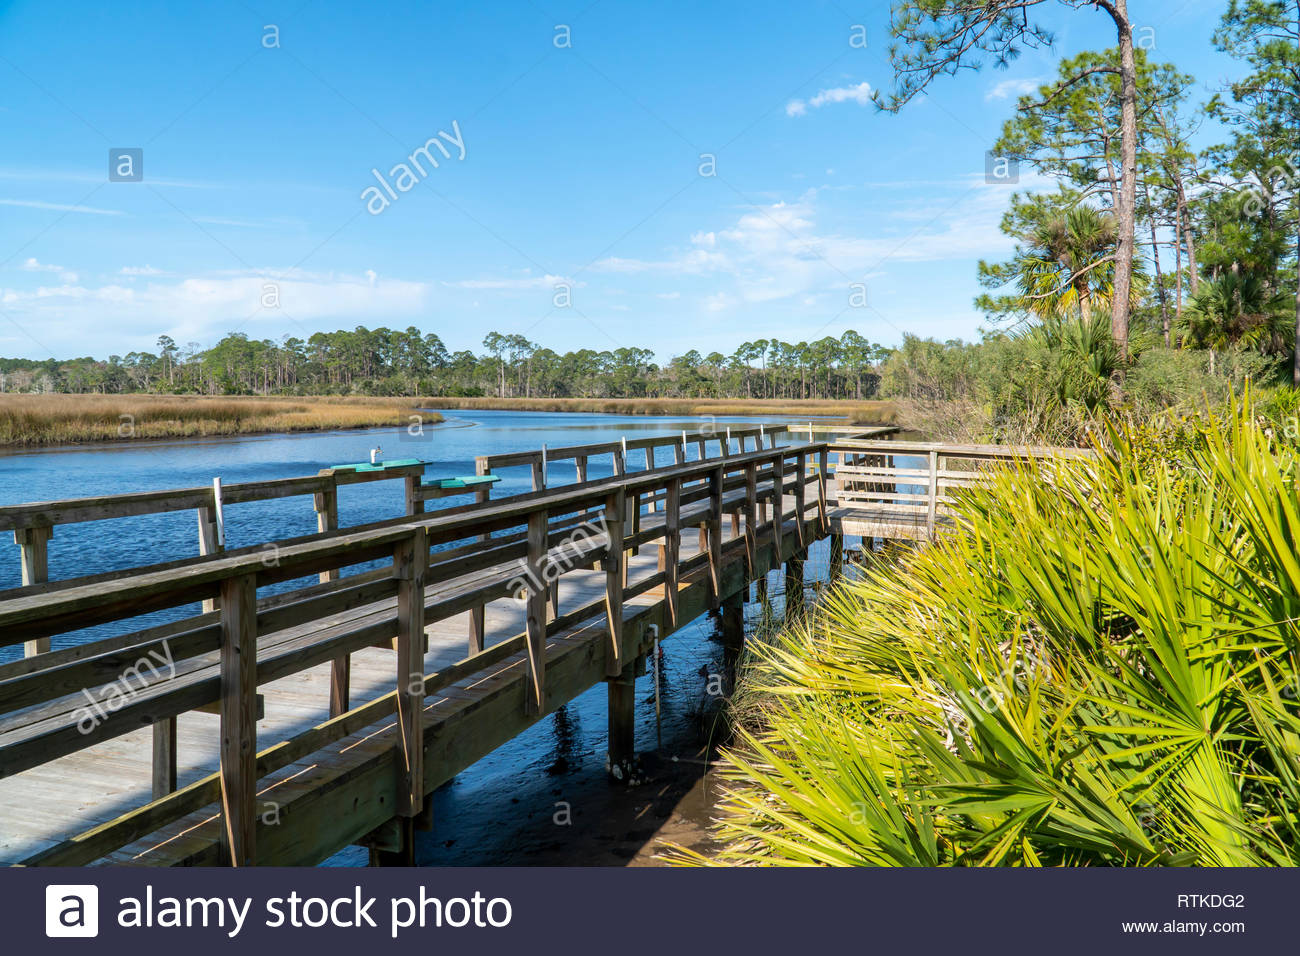 Dock at Faver-Dykes State Park near St Augustine, Florida USA Stock Photo